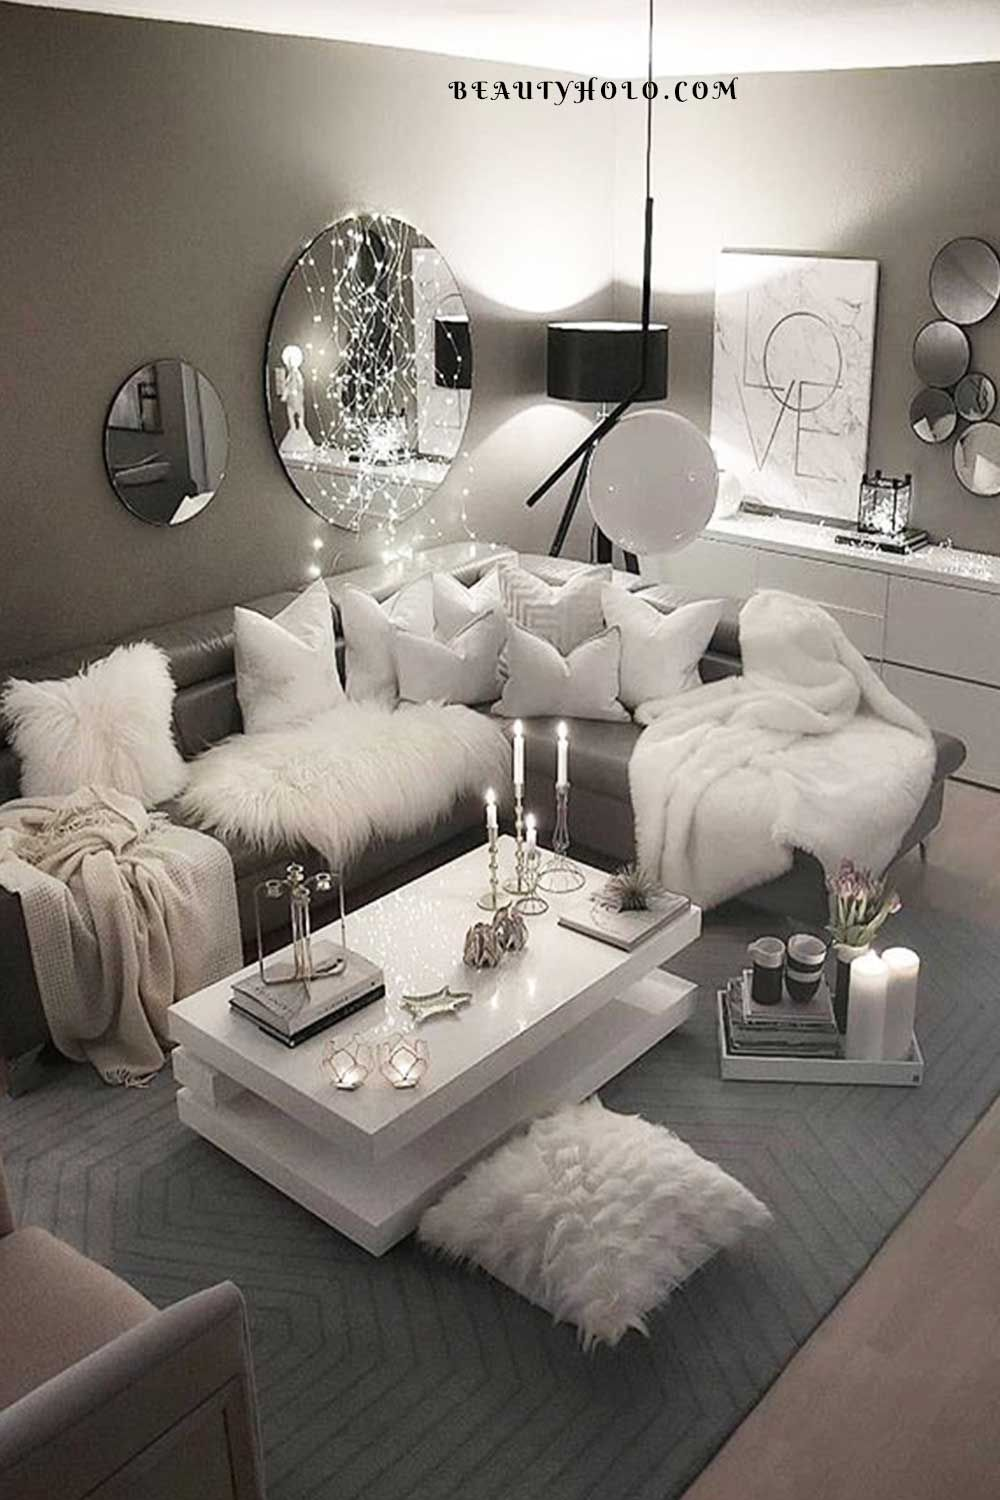 View our best bedroom decorating ideas for master bedrooms, guest bedrooms, kids' rooms, and more. 17 Best Home Decor Ideas For Living Room On A Budget In 2021 Apartment Living Room Design Living Room Designs Living Room Decor Cozy